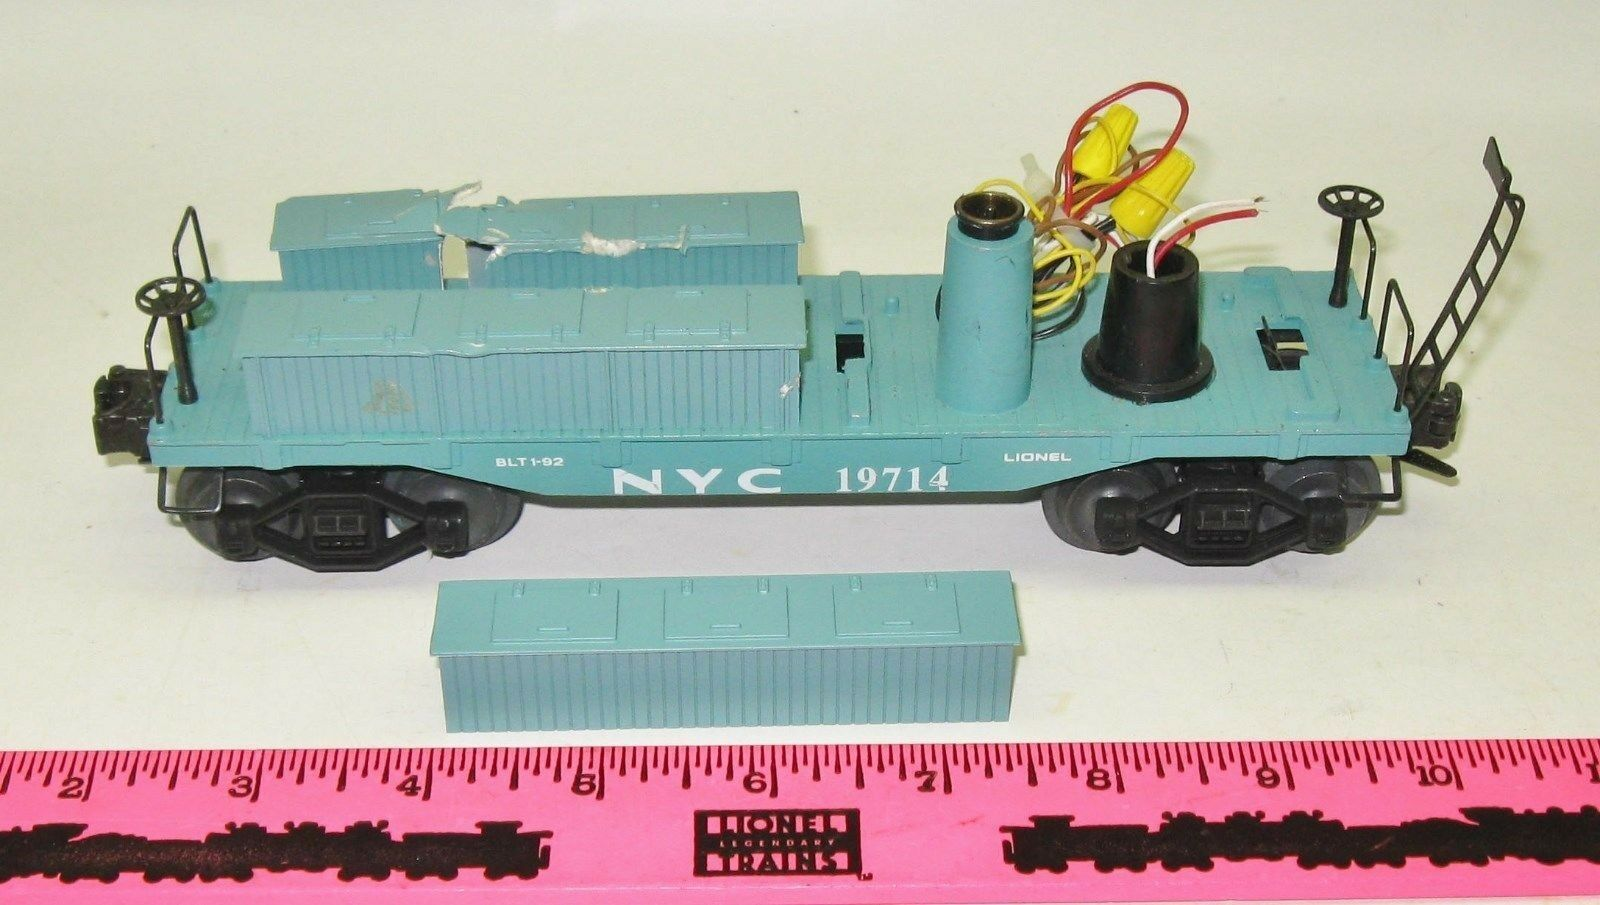 Lionel Parts for 19714 NYC searchlight caboose